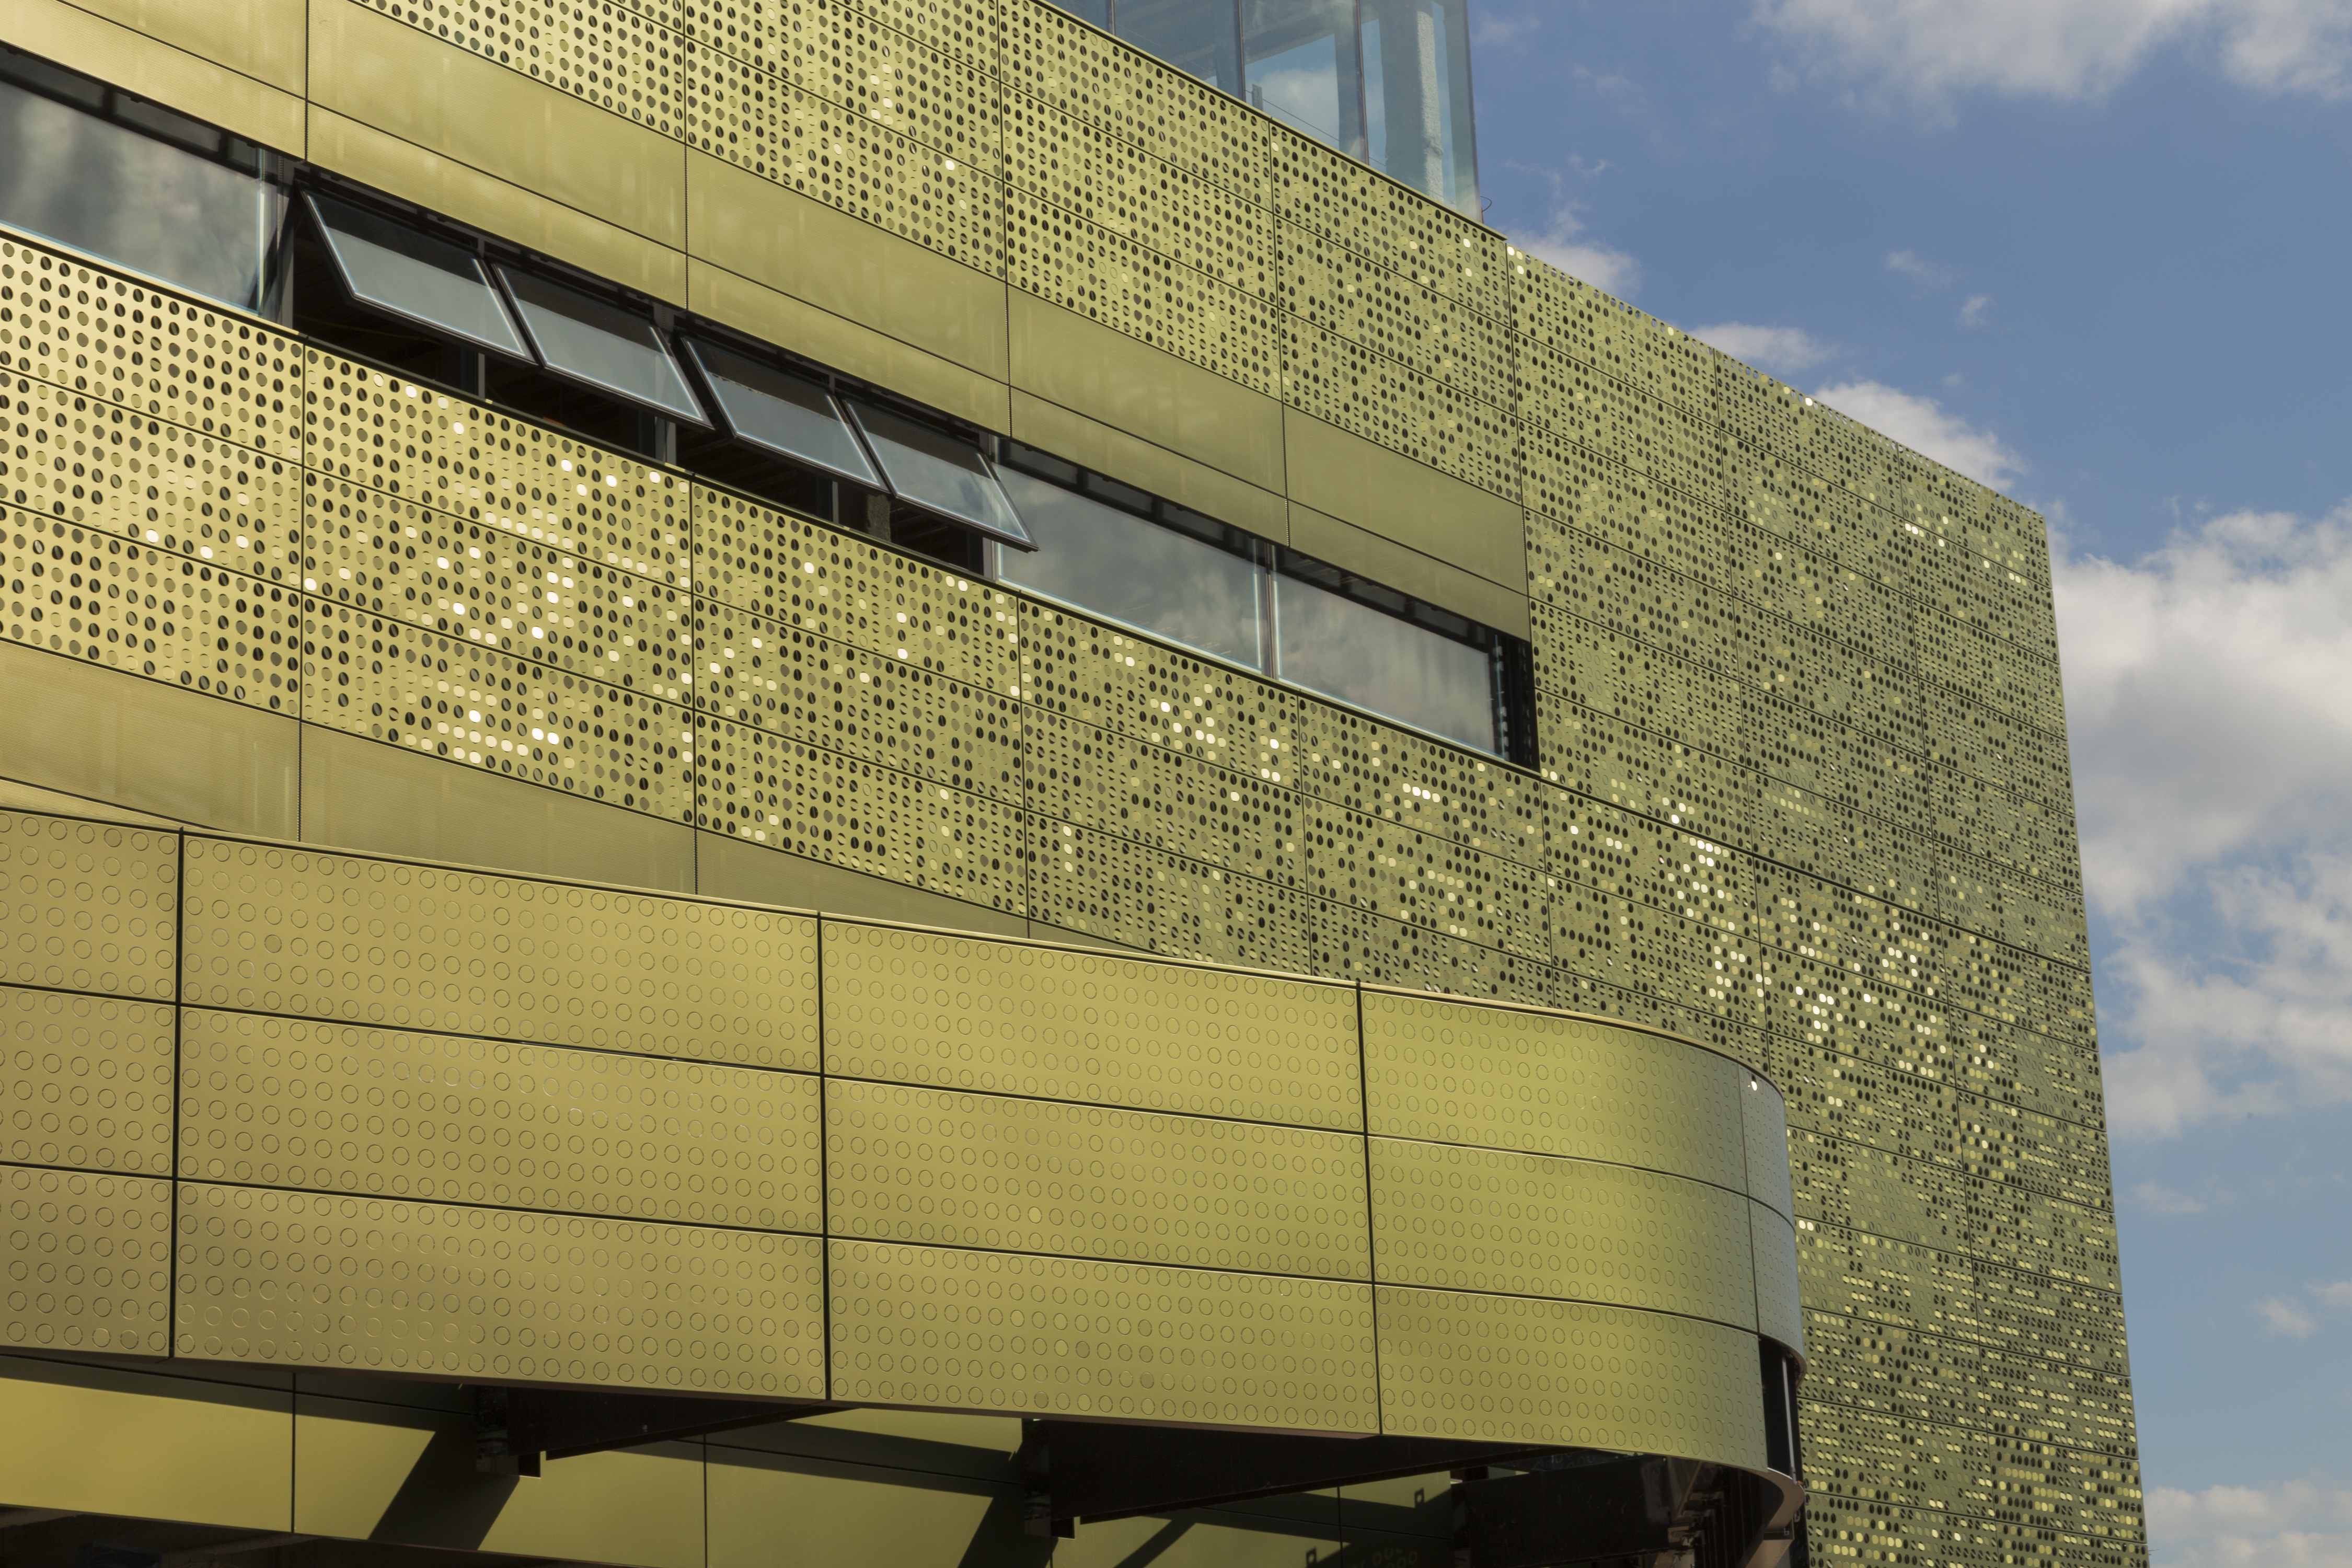 Perforation patterns on color-shift iridescent painted aluminum panels.